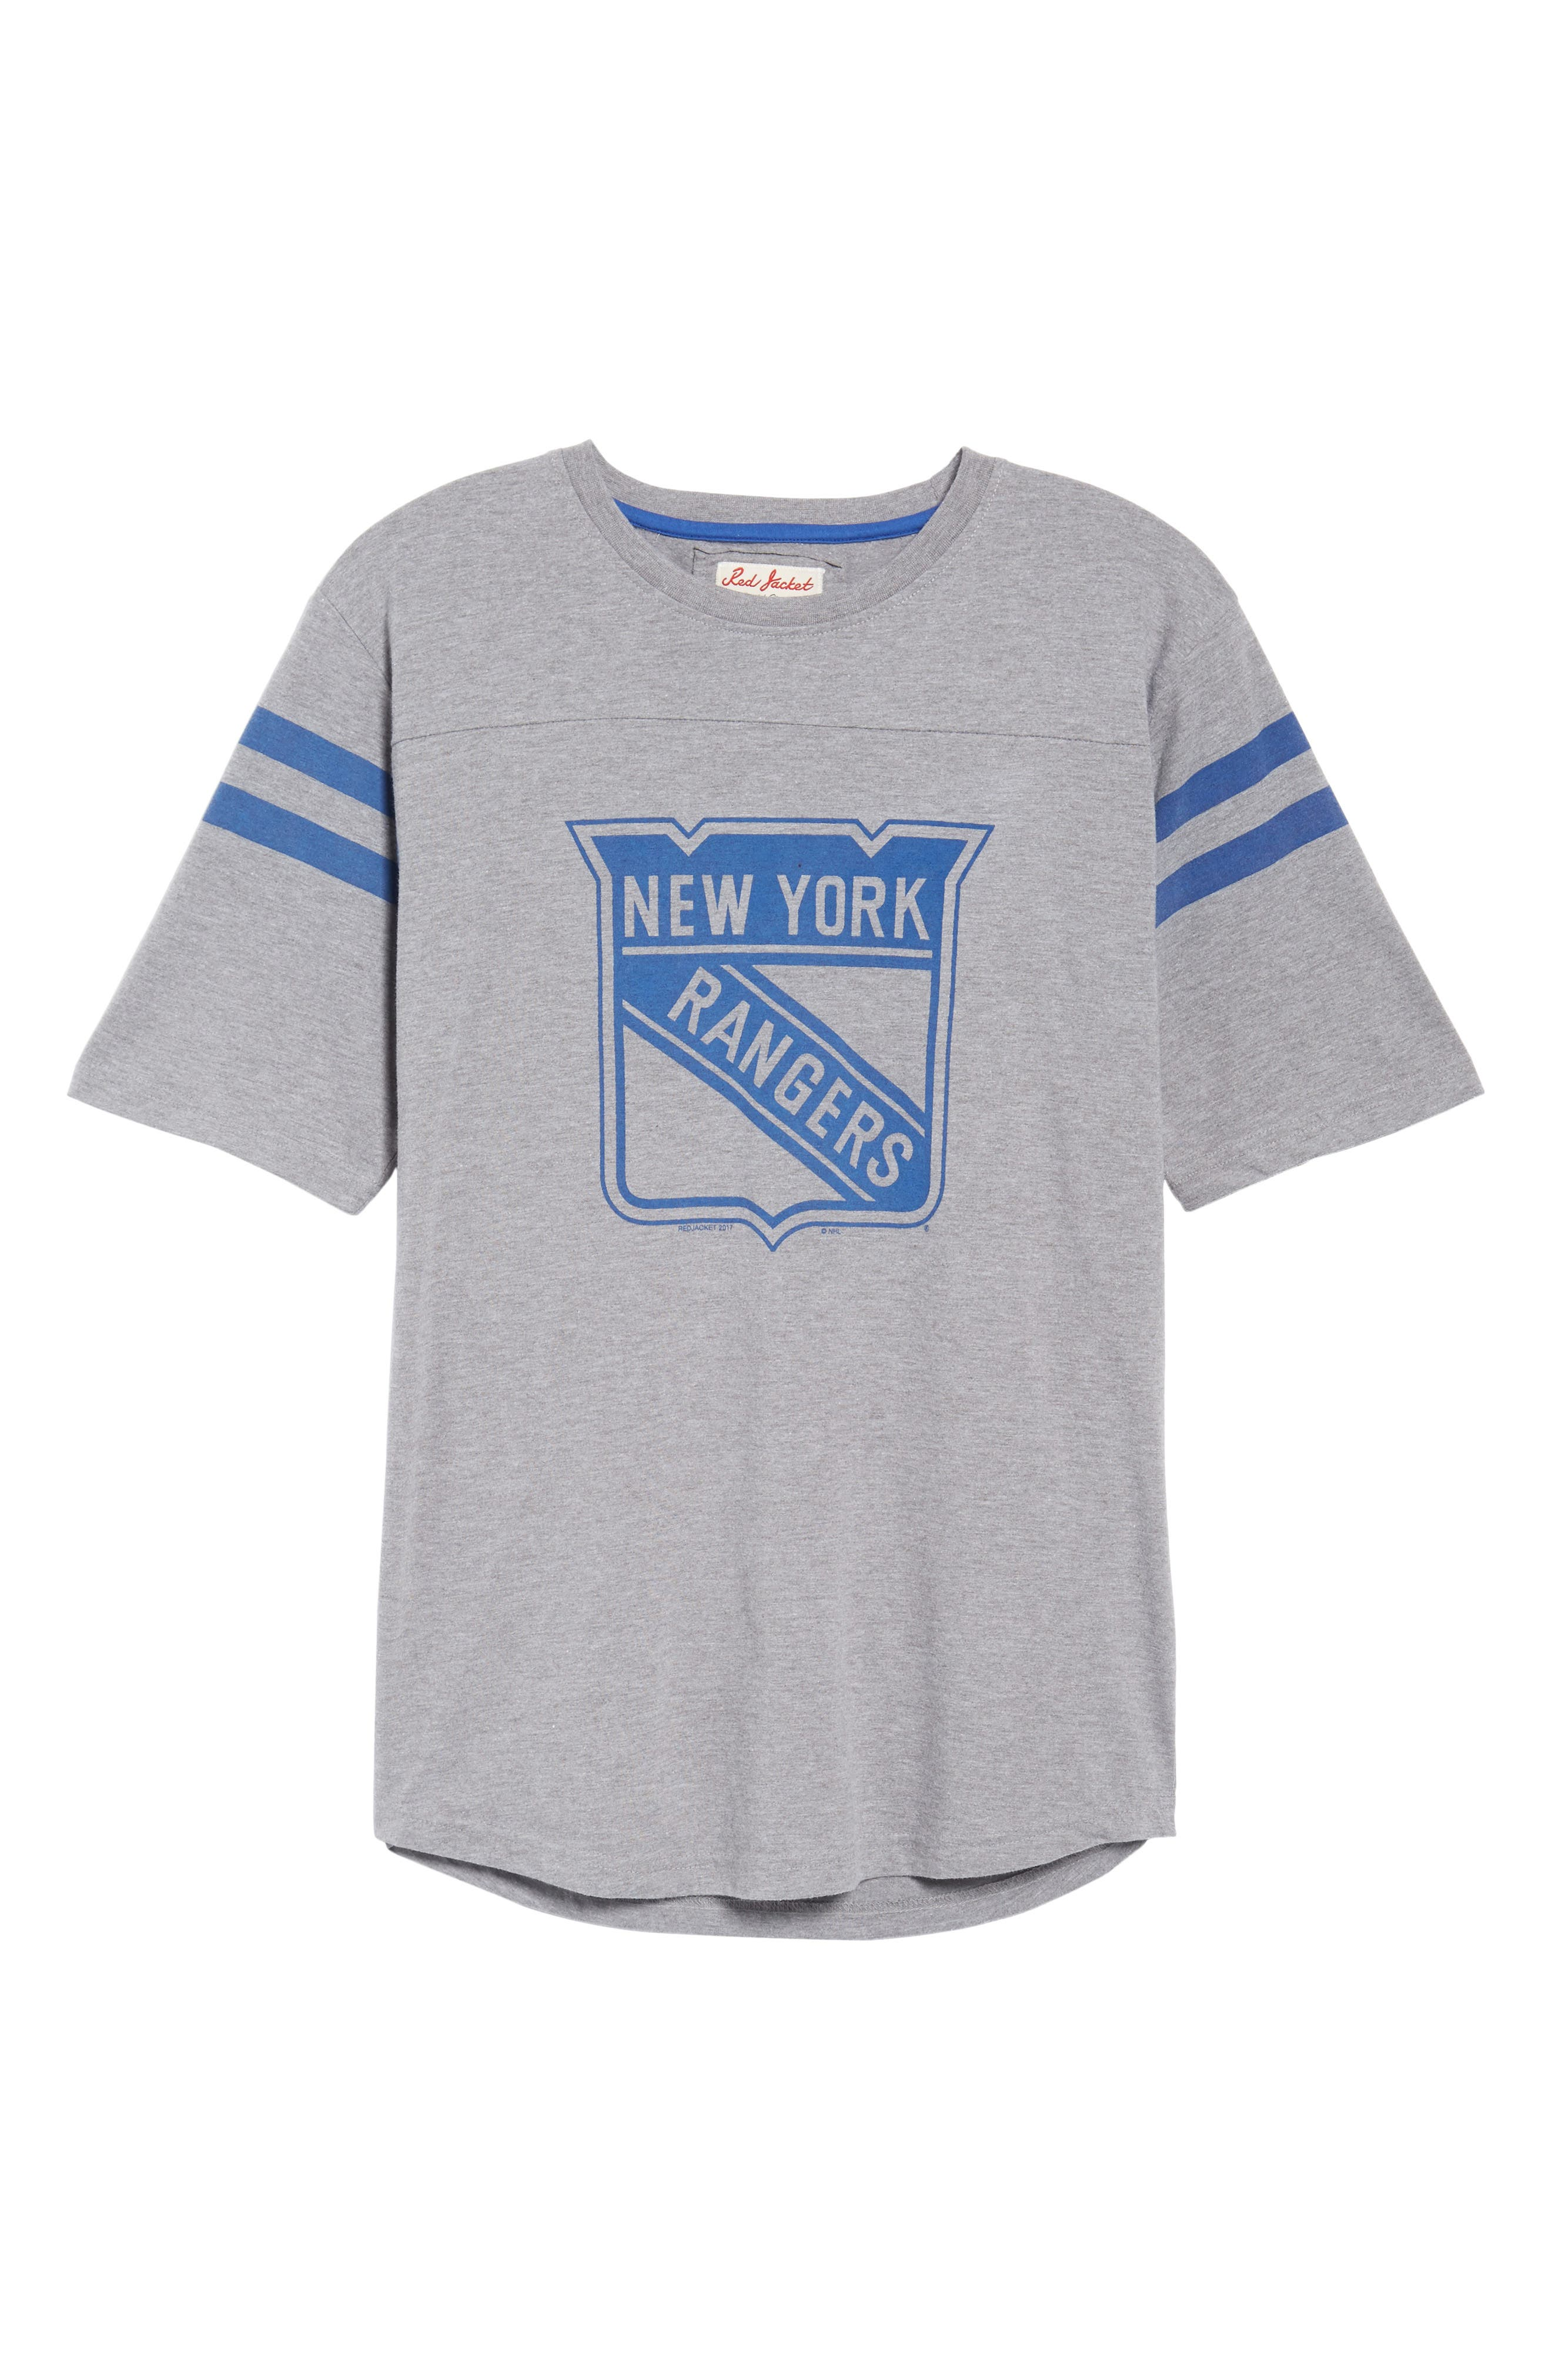 Crosby New York Rangers T-Shirt,                             Alternate thumbnail 6, color,                             Heather Grey